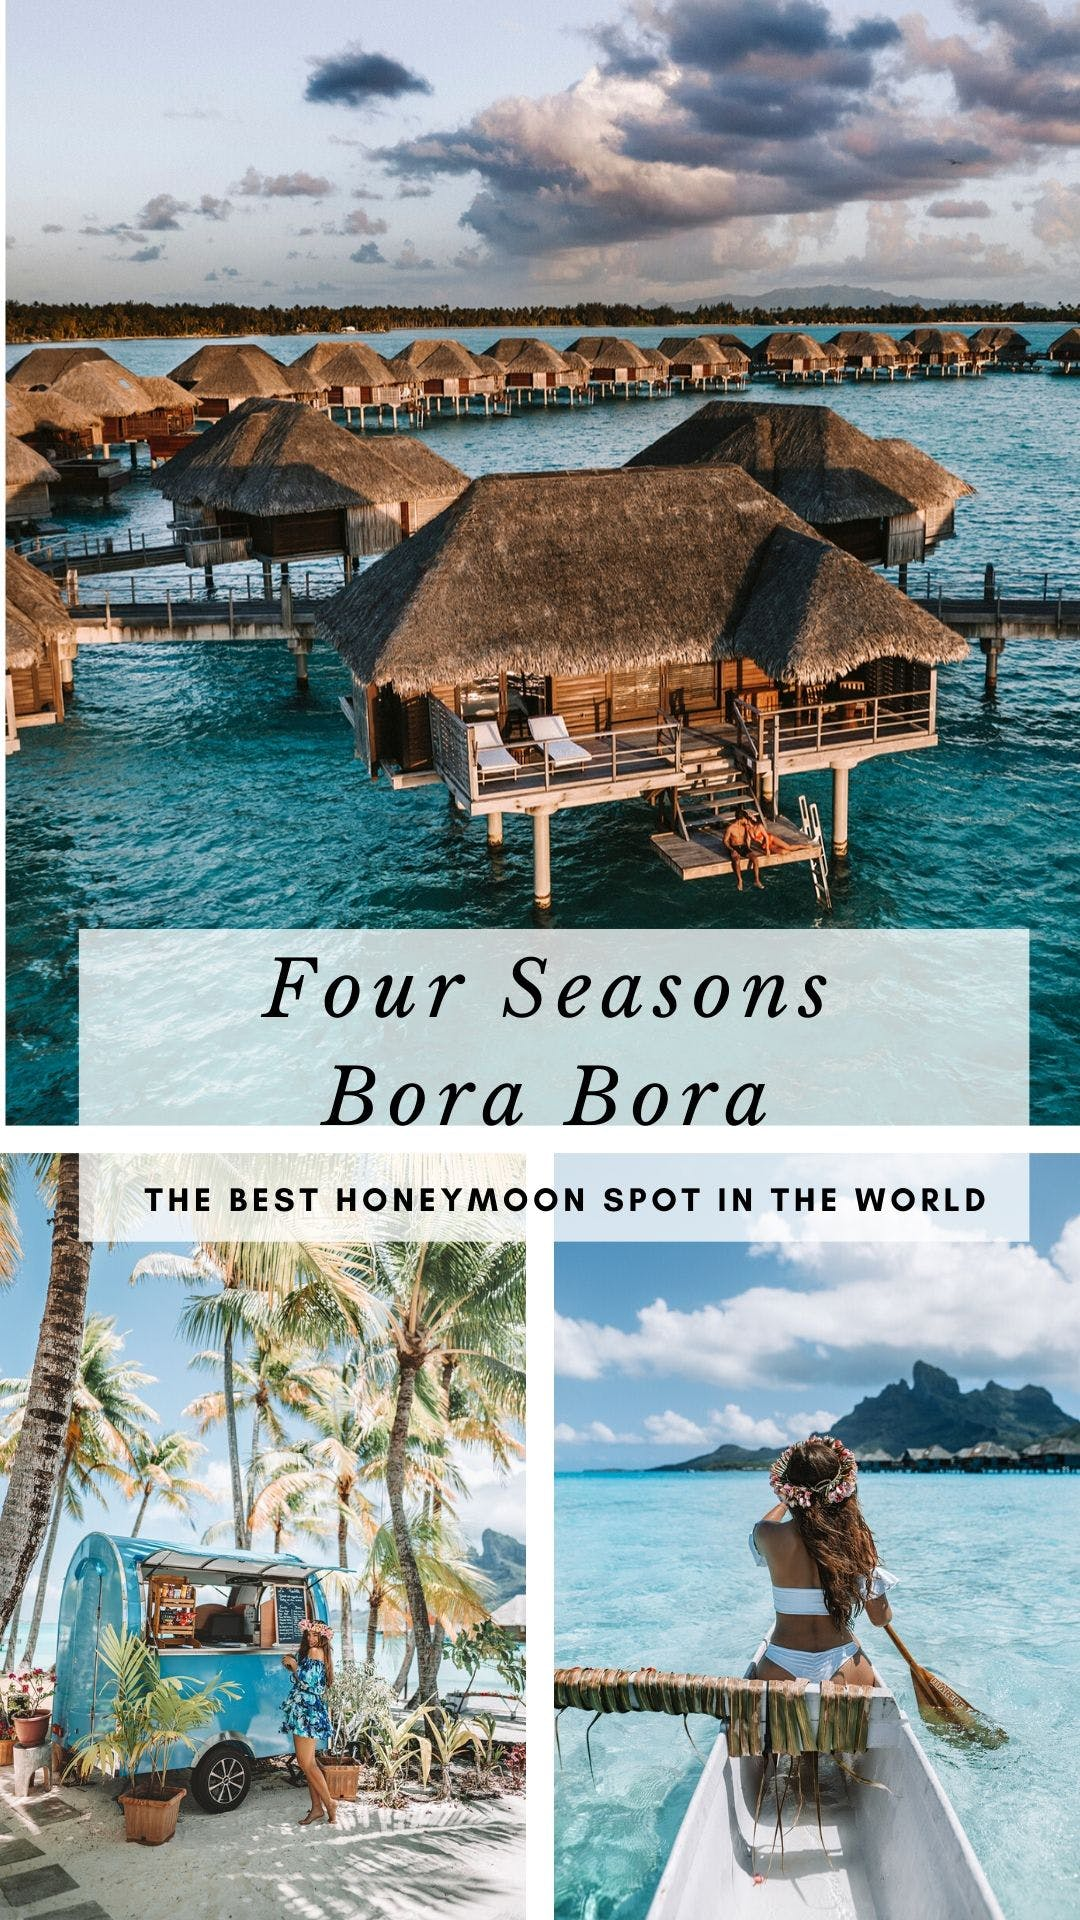 Four Seasons Bora Bora Resort is the perfect spot for a honeymoon in Bora Bora. Click here for the full guide to Four Seasons Bora Bora! #borabora #honeymoon #bucketlist #travel | Bora Bora honeymoon bungalows | Bora Bora honeymoon romantic getaways | Bora Bora honeymoon pictures | Bora Bora honeymoon resorts | Bora Bora honeymoon things to do in | Bora Bora honeymoon couple | Bora Bora honeymoon Four Seasons | Bora Bora honeymoon bungalows glass floor | Bora Bora bungalow Four Seasons interior